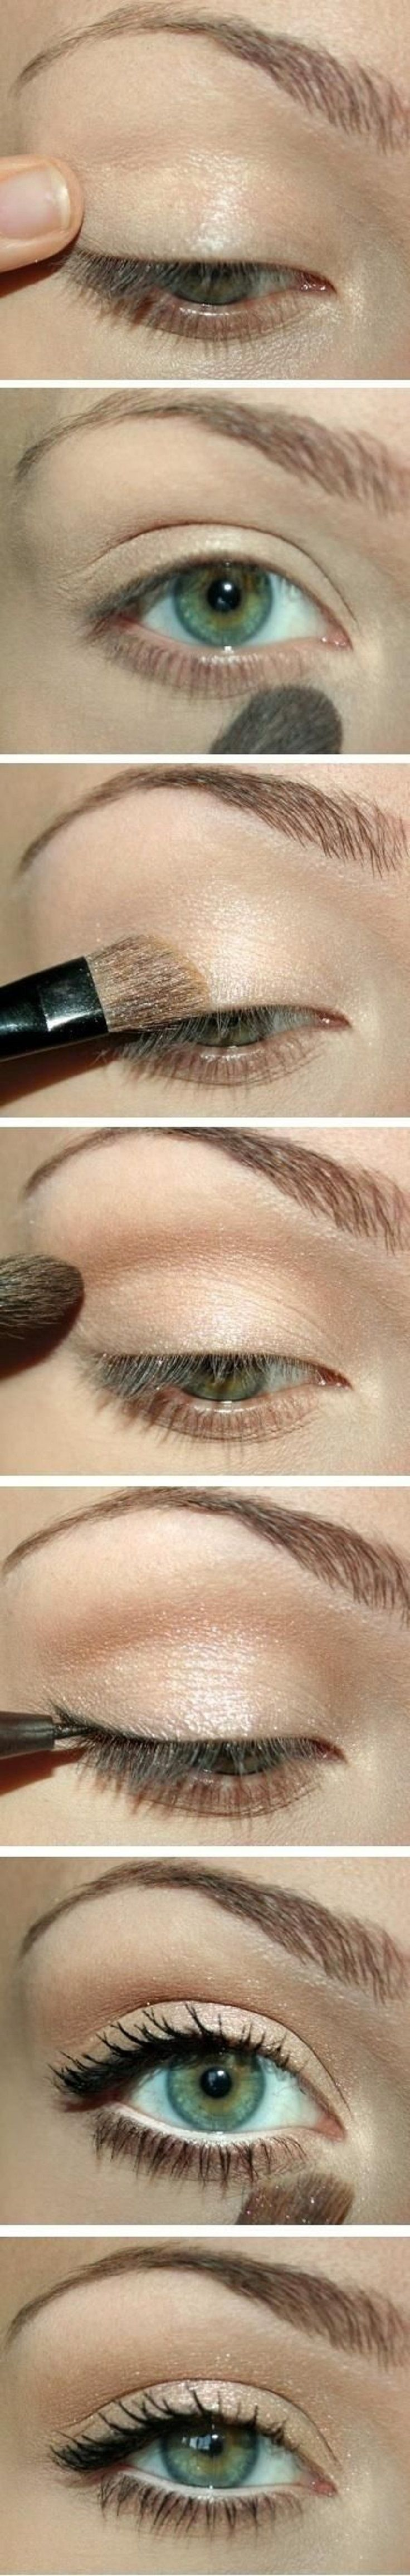 Check out this tutorial for natural eye makeup. Get the look with makeup from Beauty.com.